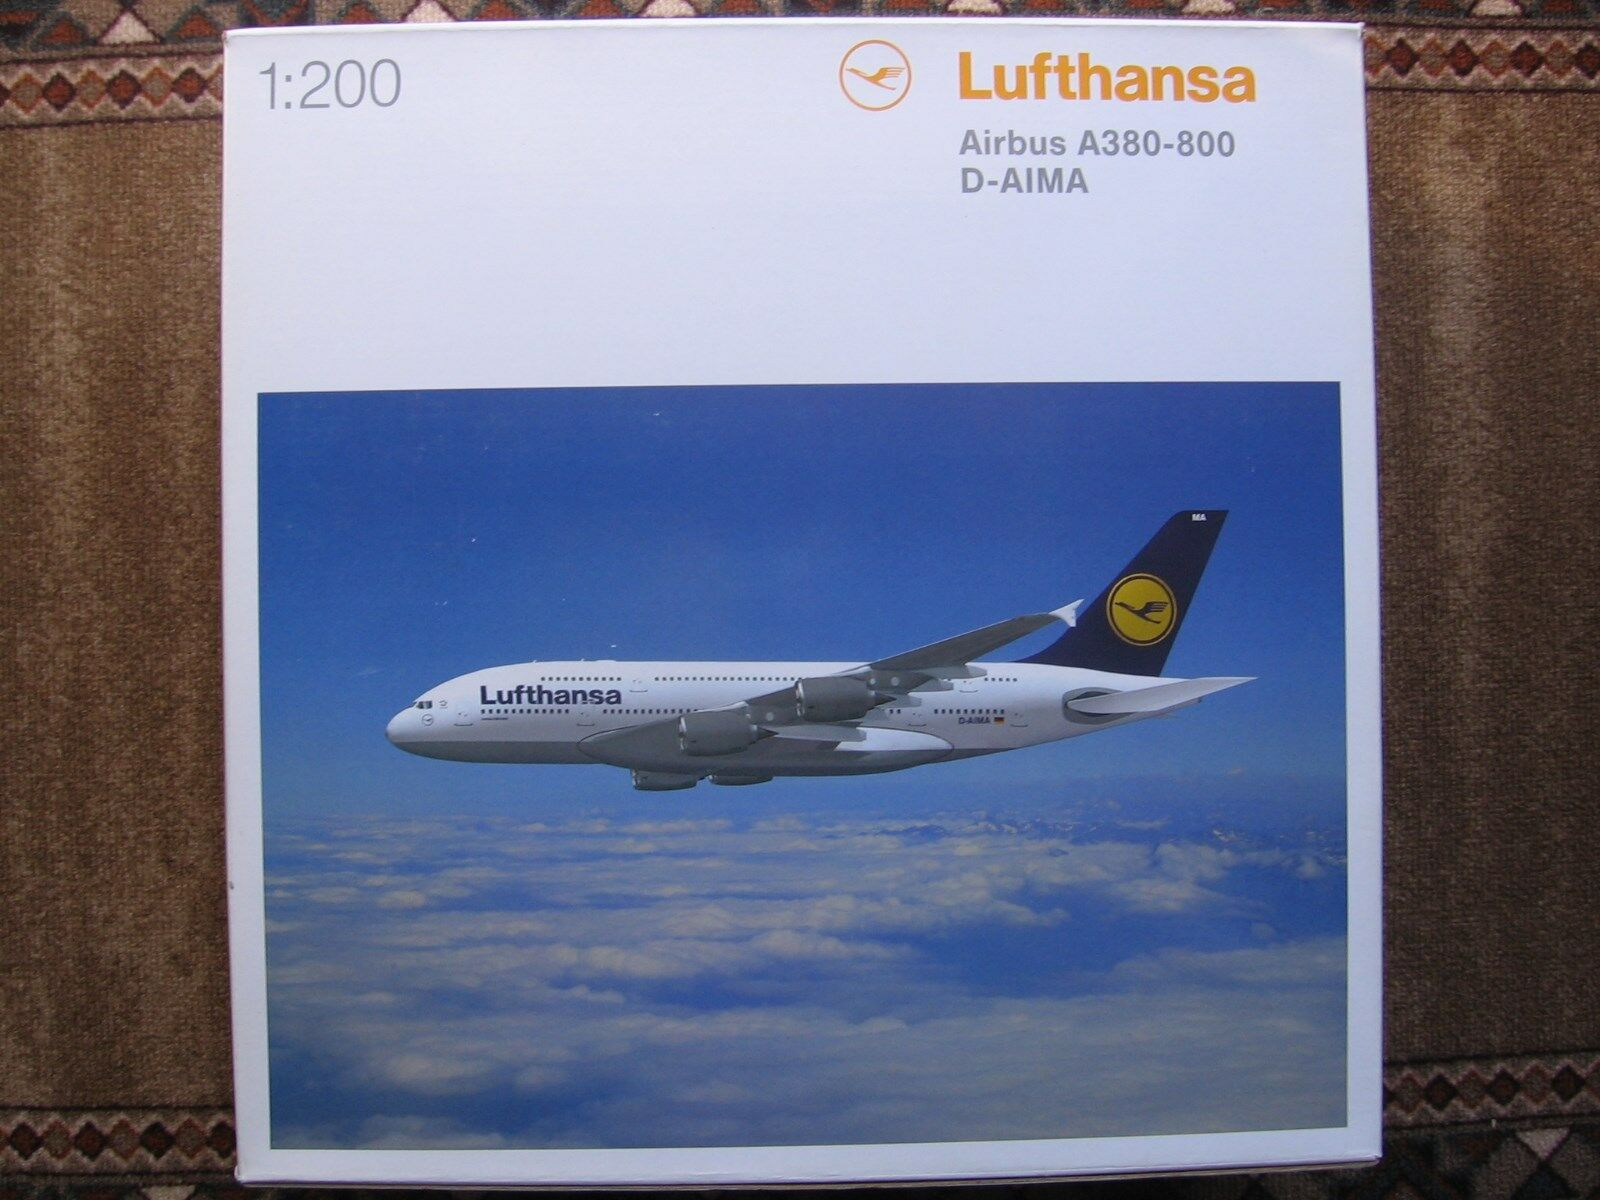 Lufthansa – Herpa Wings airbus a380-800 1 200 D-AIMA nuevo mint